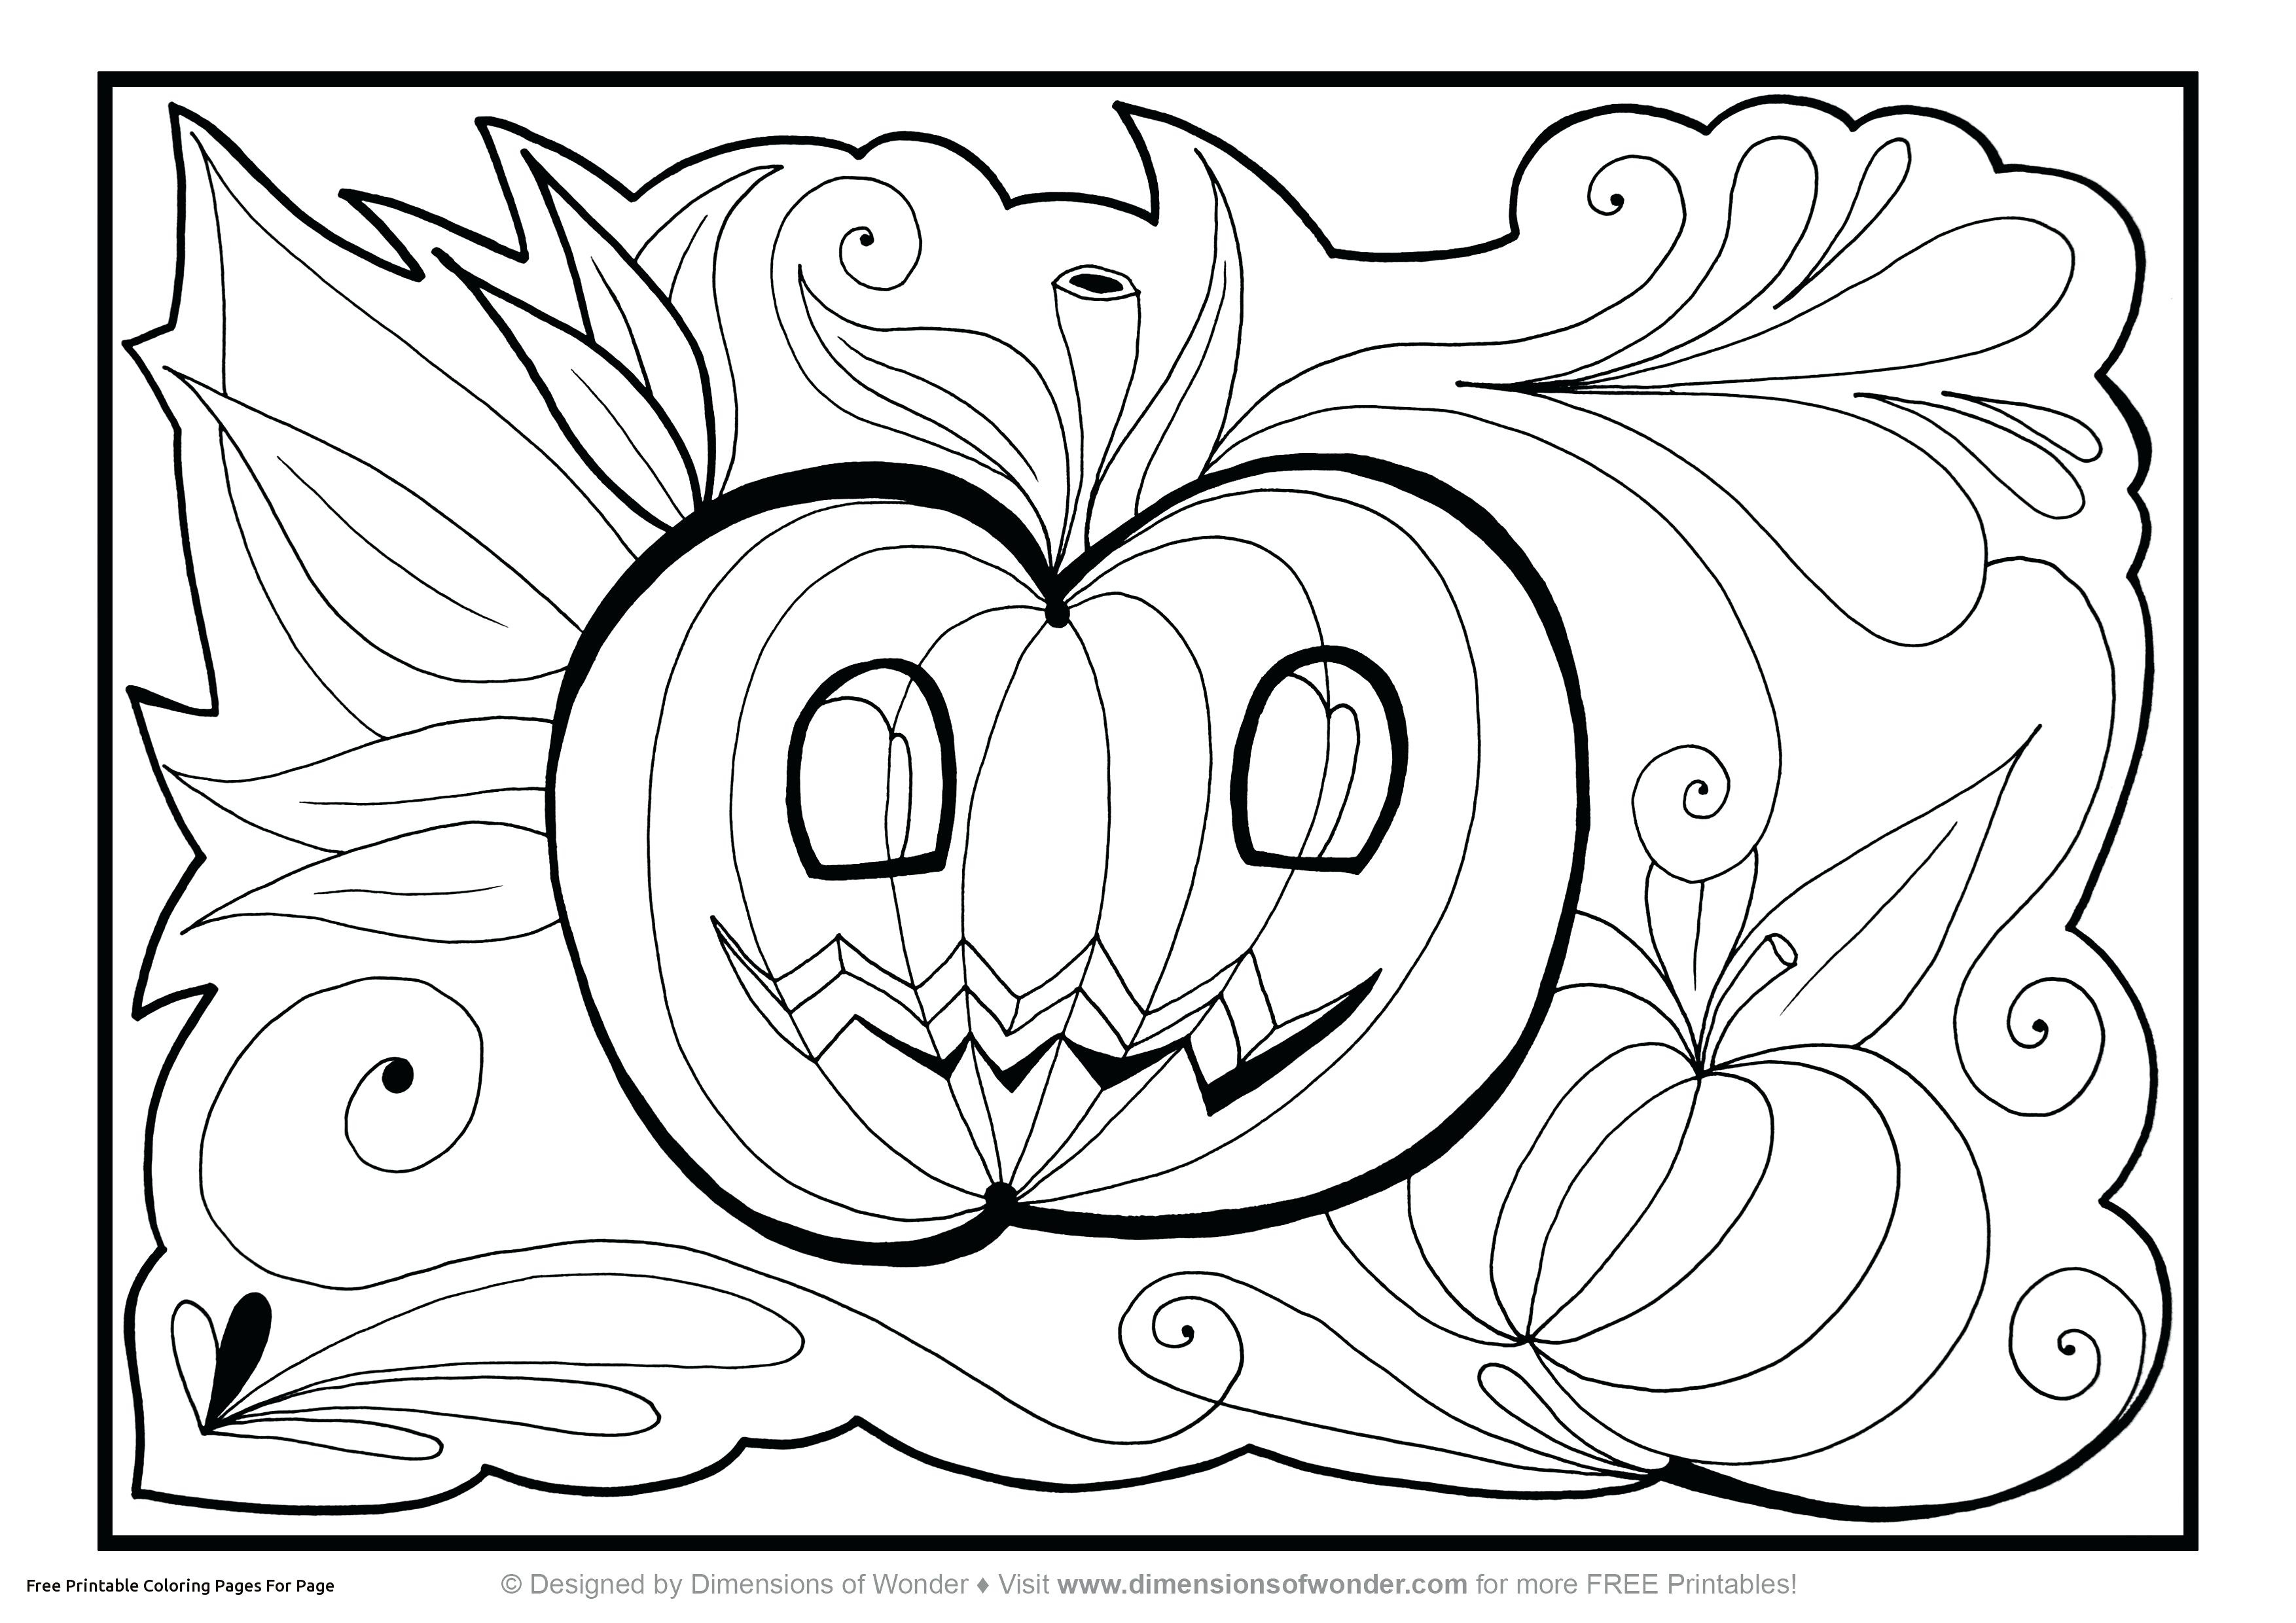 Halloween Coloring Pages Printable Unique Halloween Coloring Pages Printable Witches Adult Sheets For